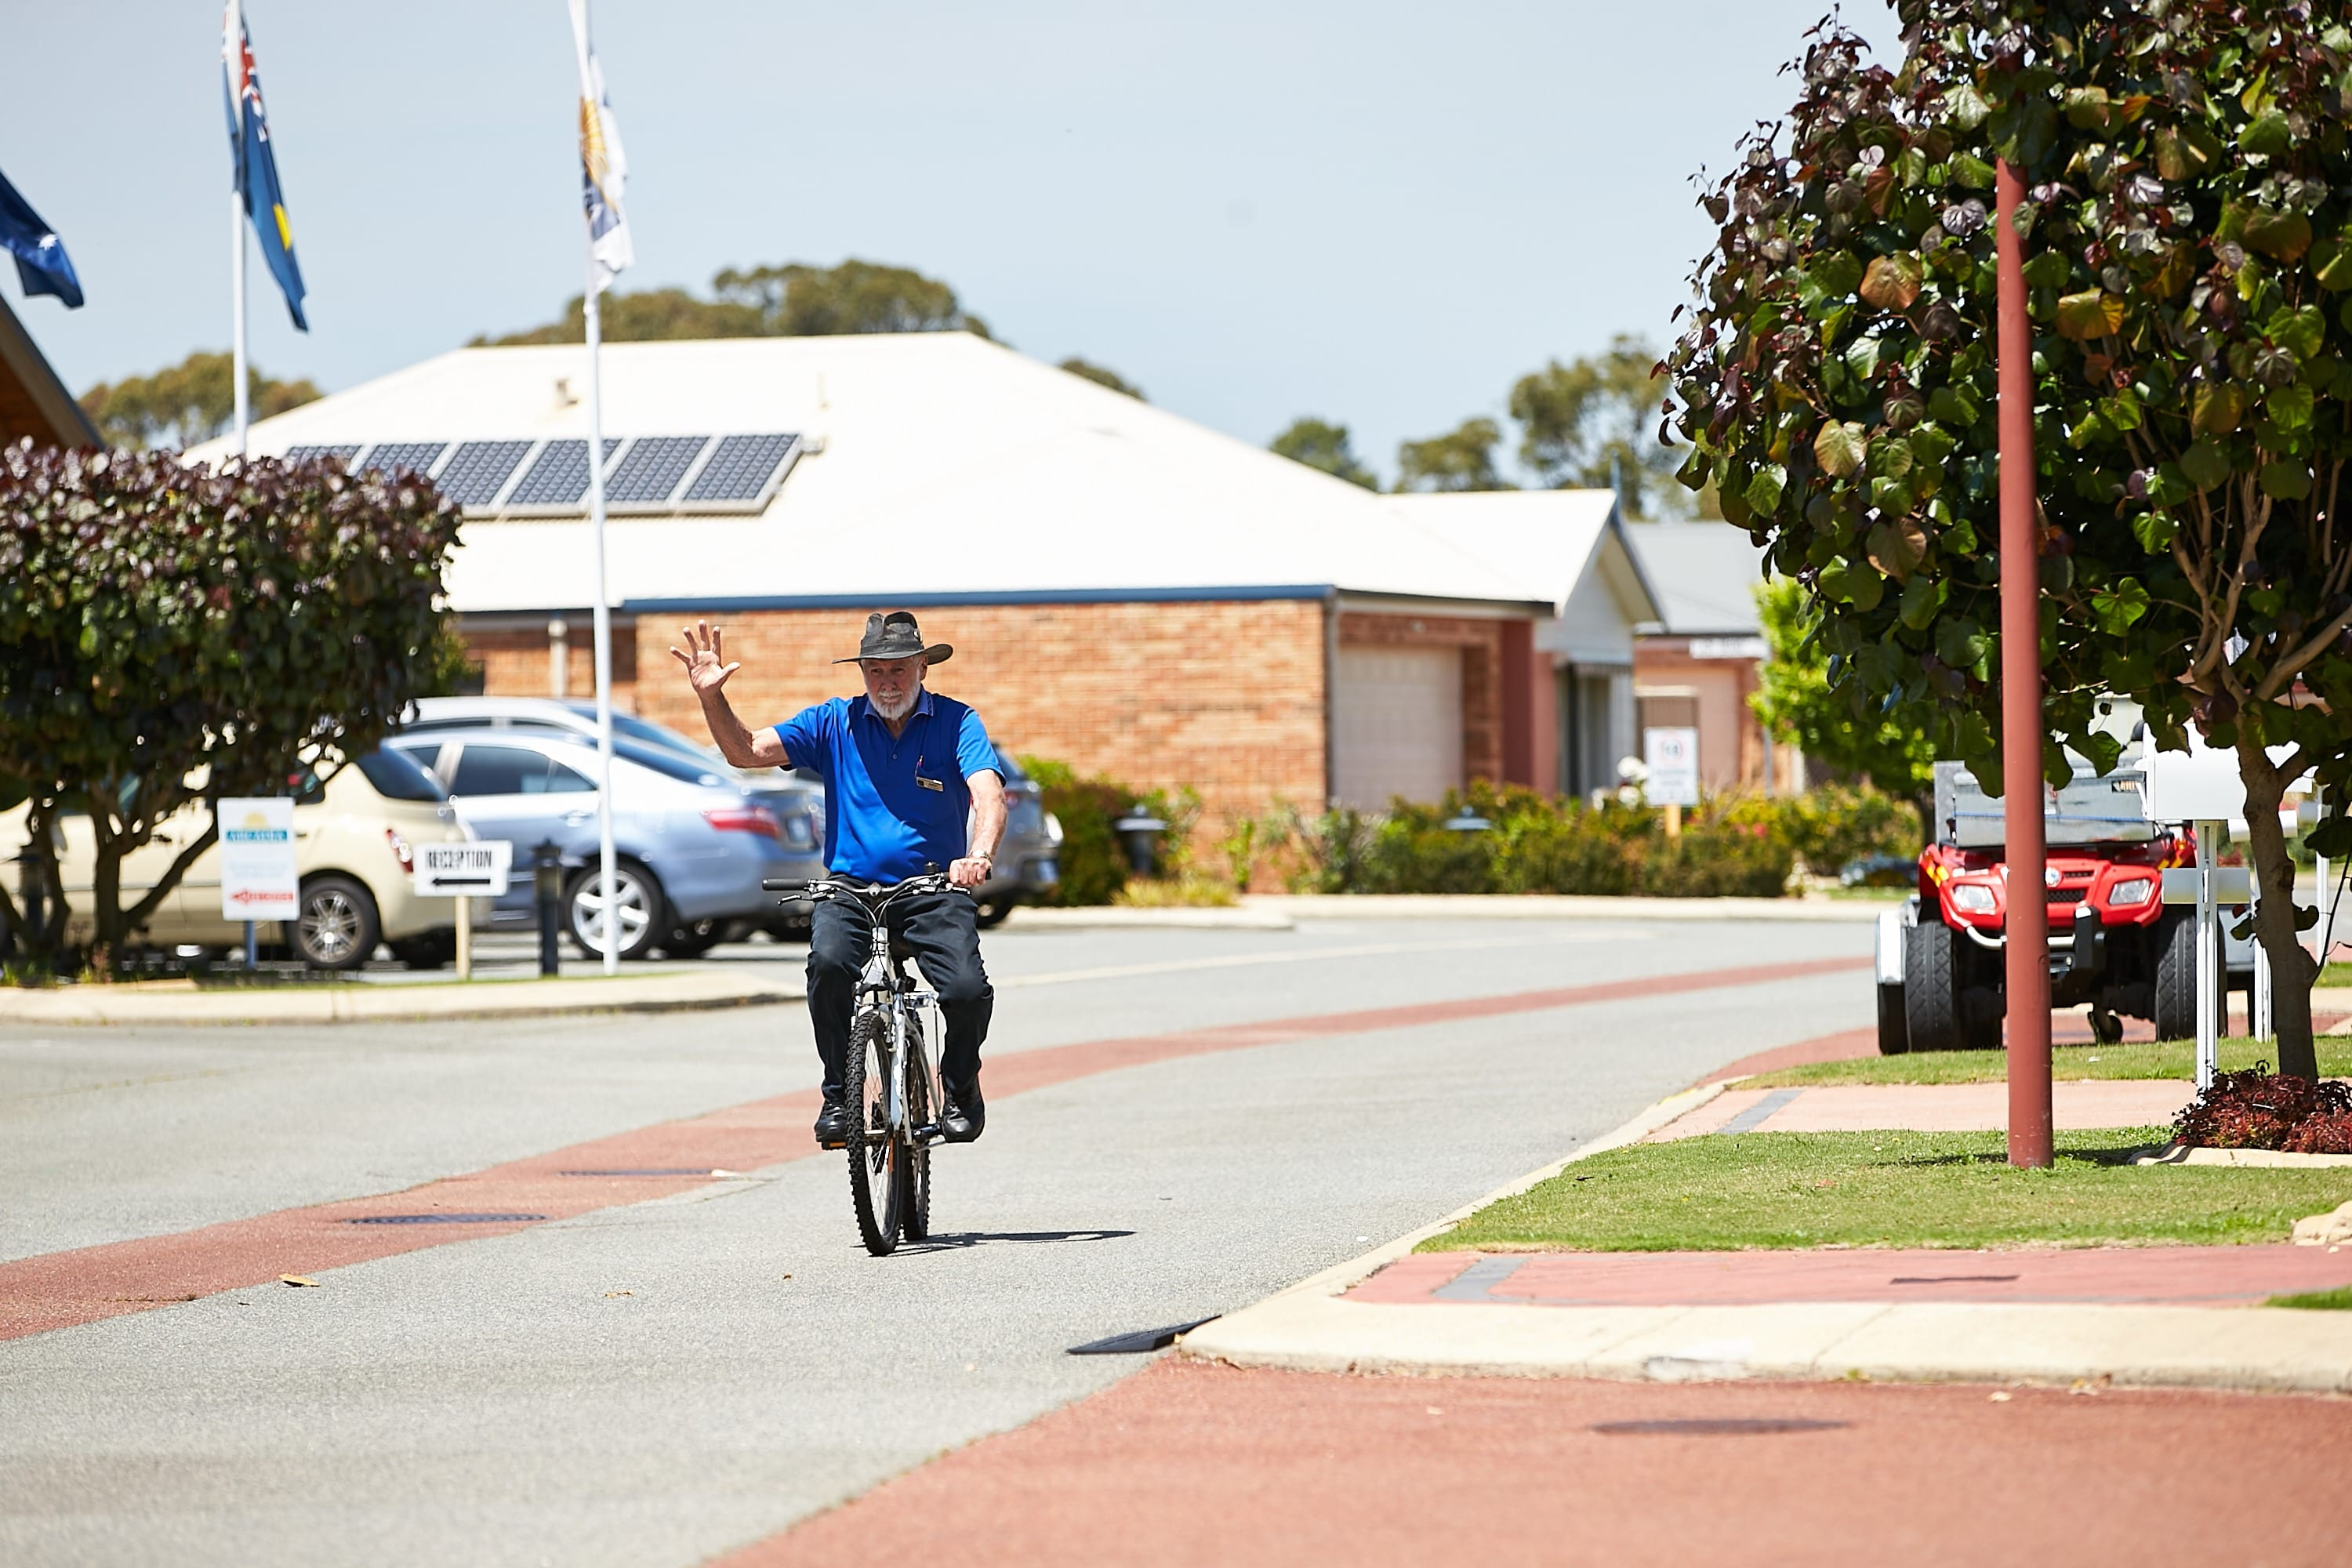 Mandurah resident on bike